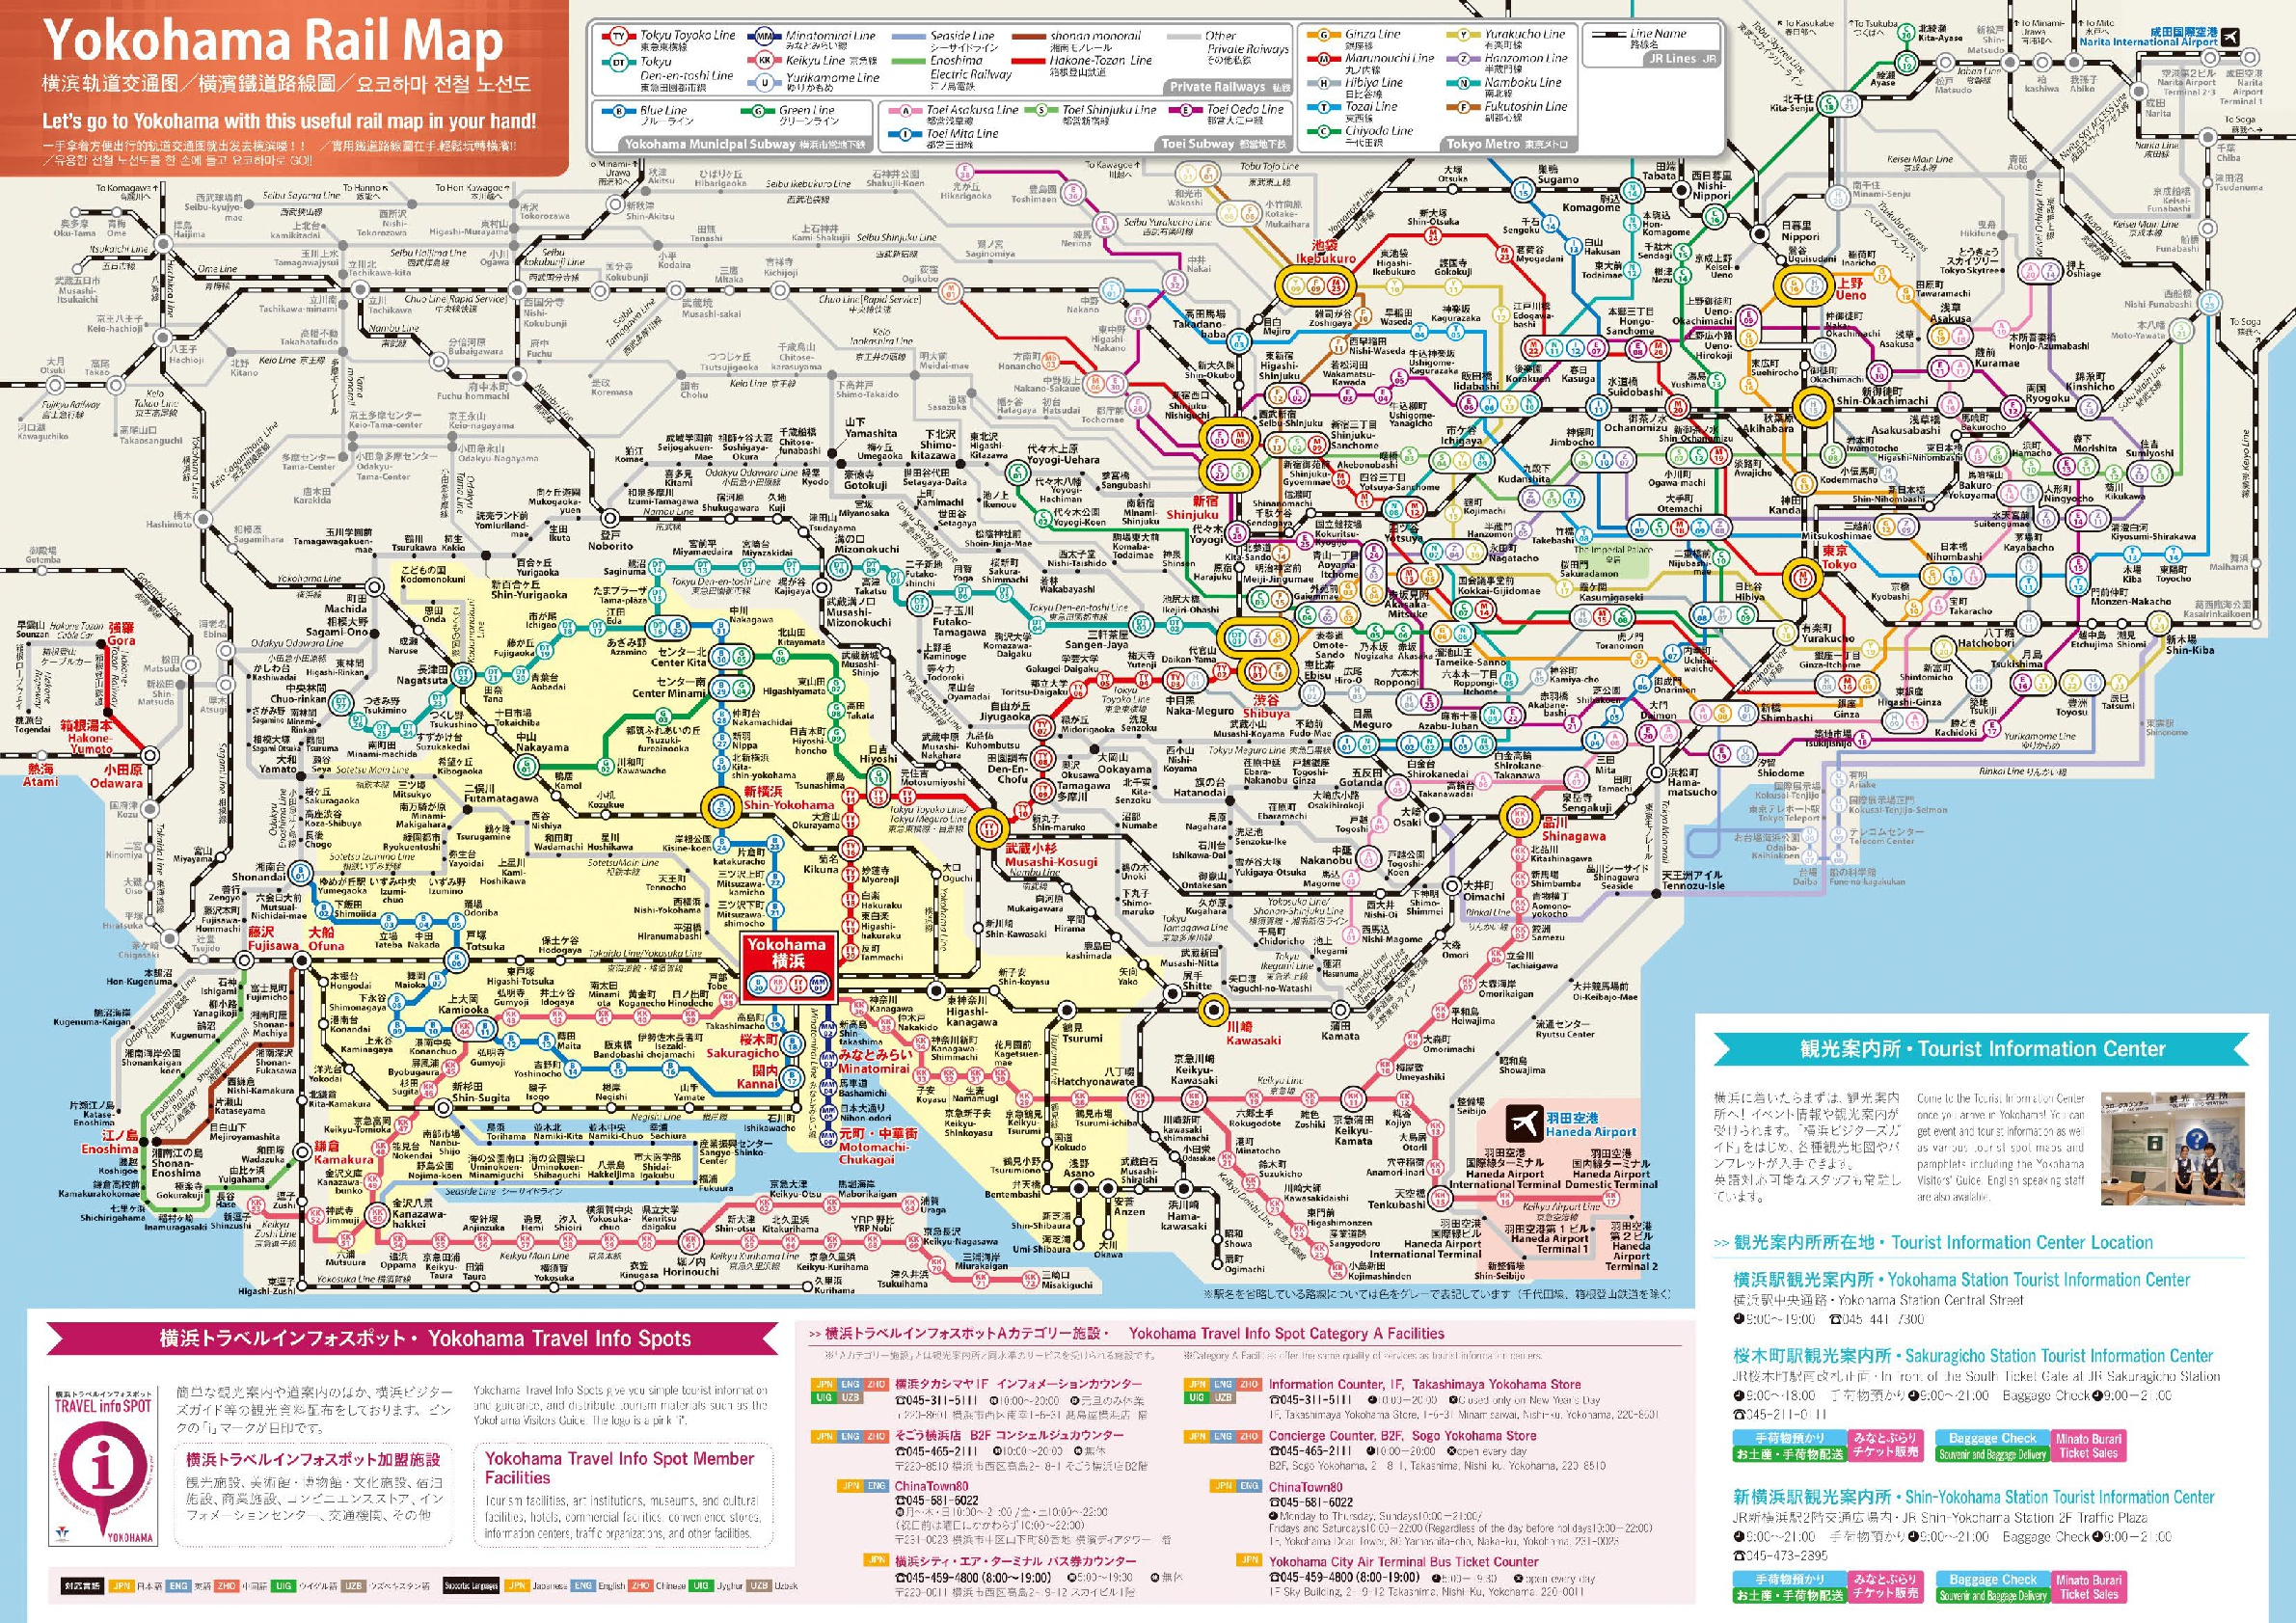 Yokohama Subway Map Pdf.Getting Around Yokohama Travel Info Yokohama Official Visitors